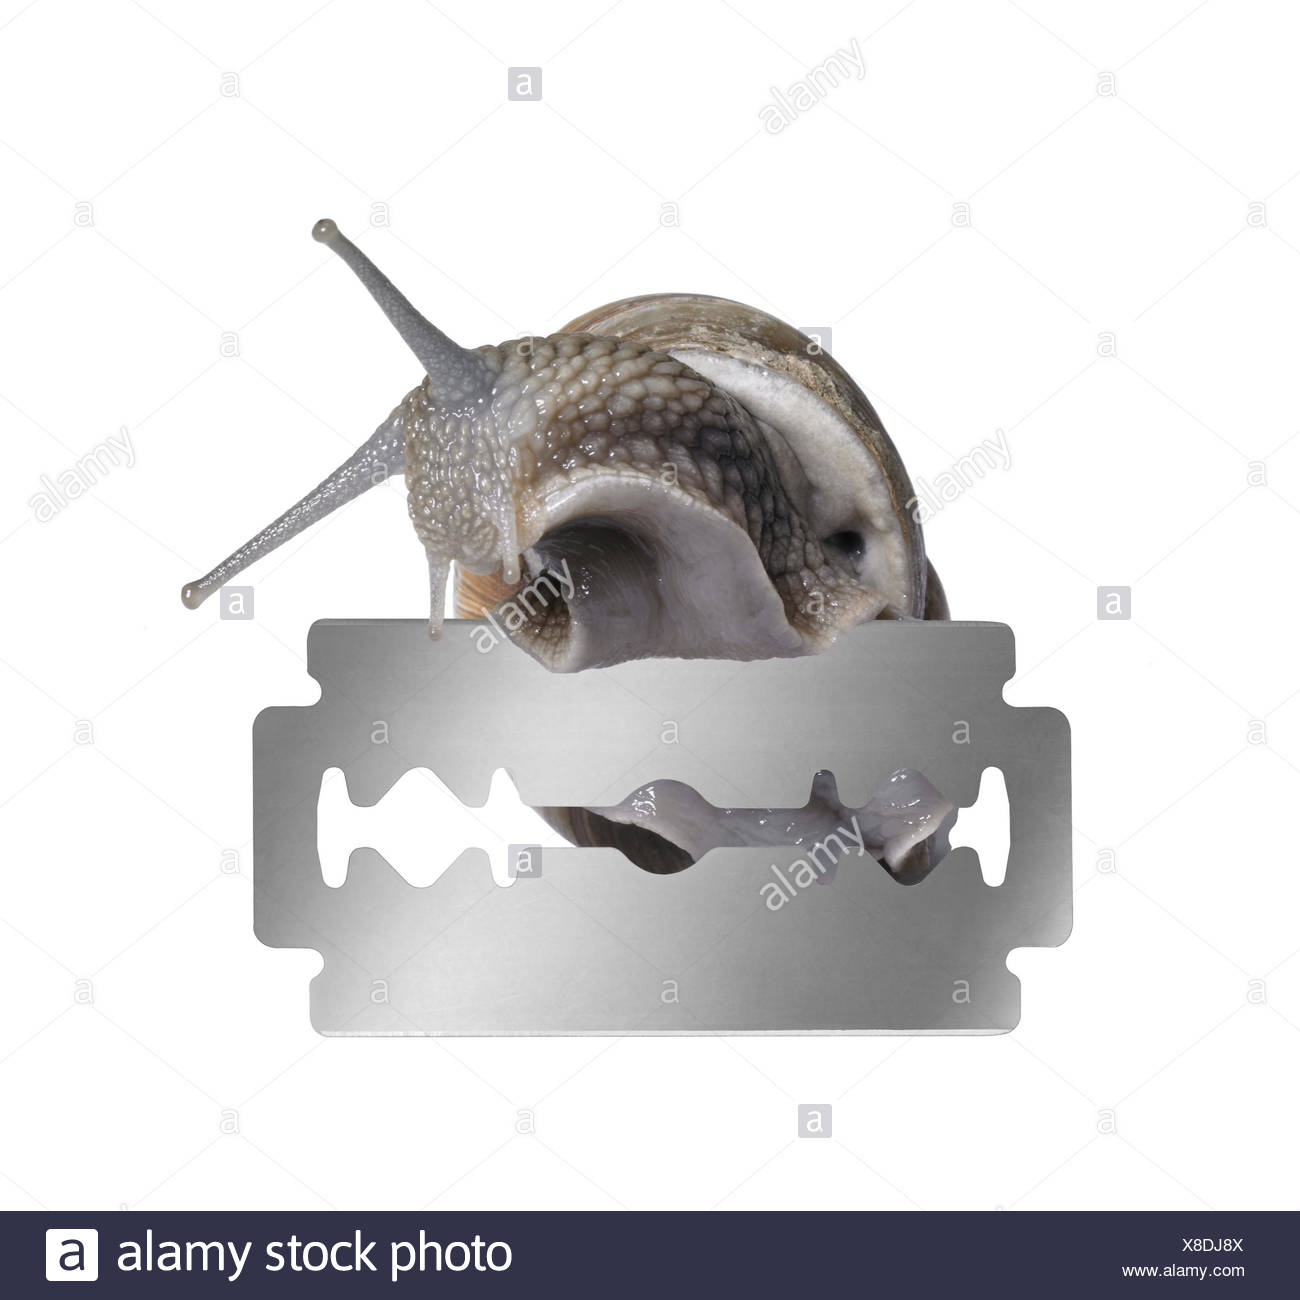 studio photography of a Grapevine snail creeping on the edge of a razor blade in white back Stock Photo